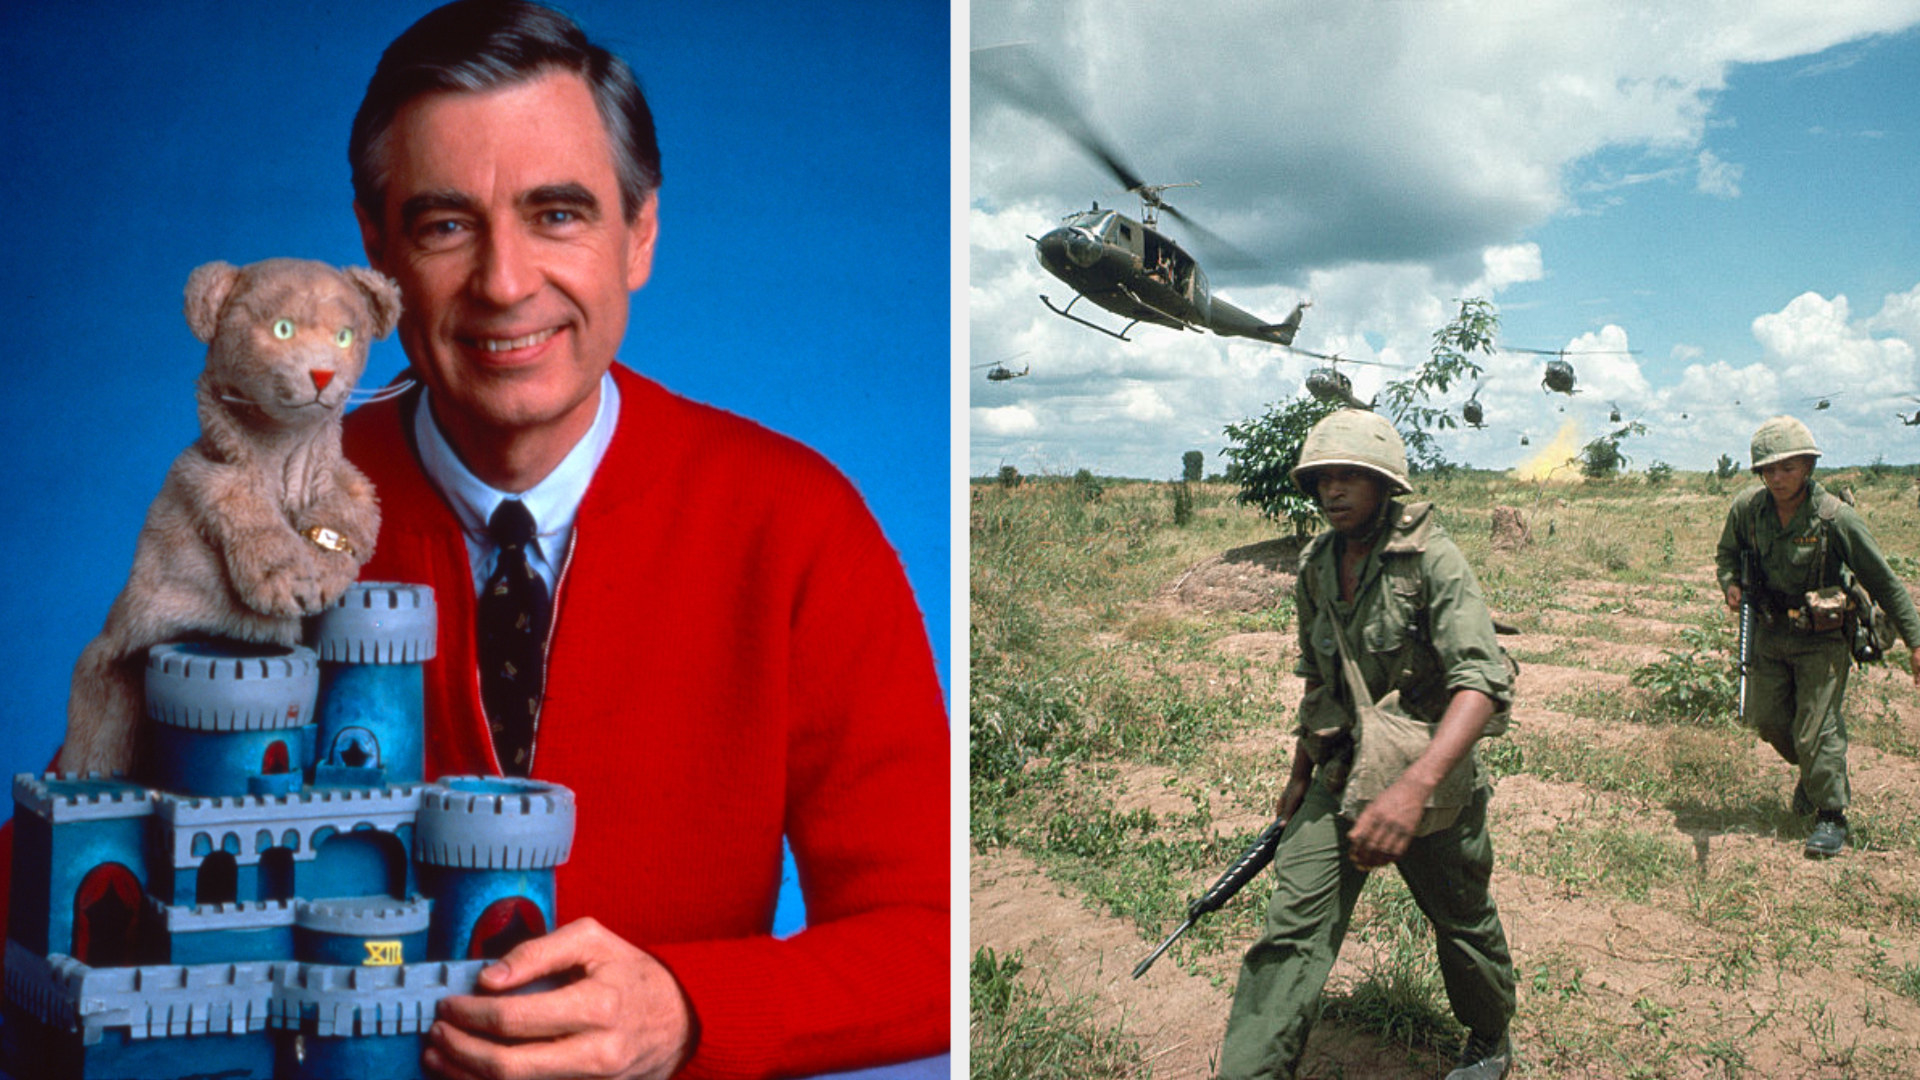 """Mister Rogers posing with a puppet and castle for his show """"Mister Rogers' Neighborhood""""; still of soldiers fighting in the Vietnam War"""